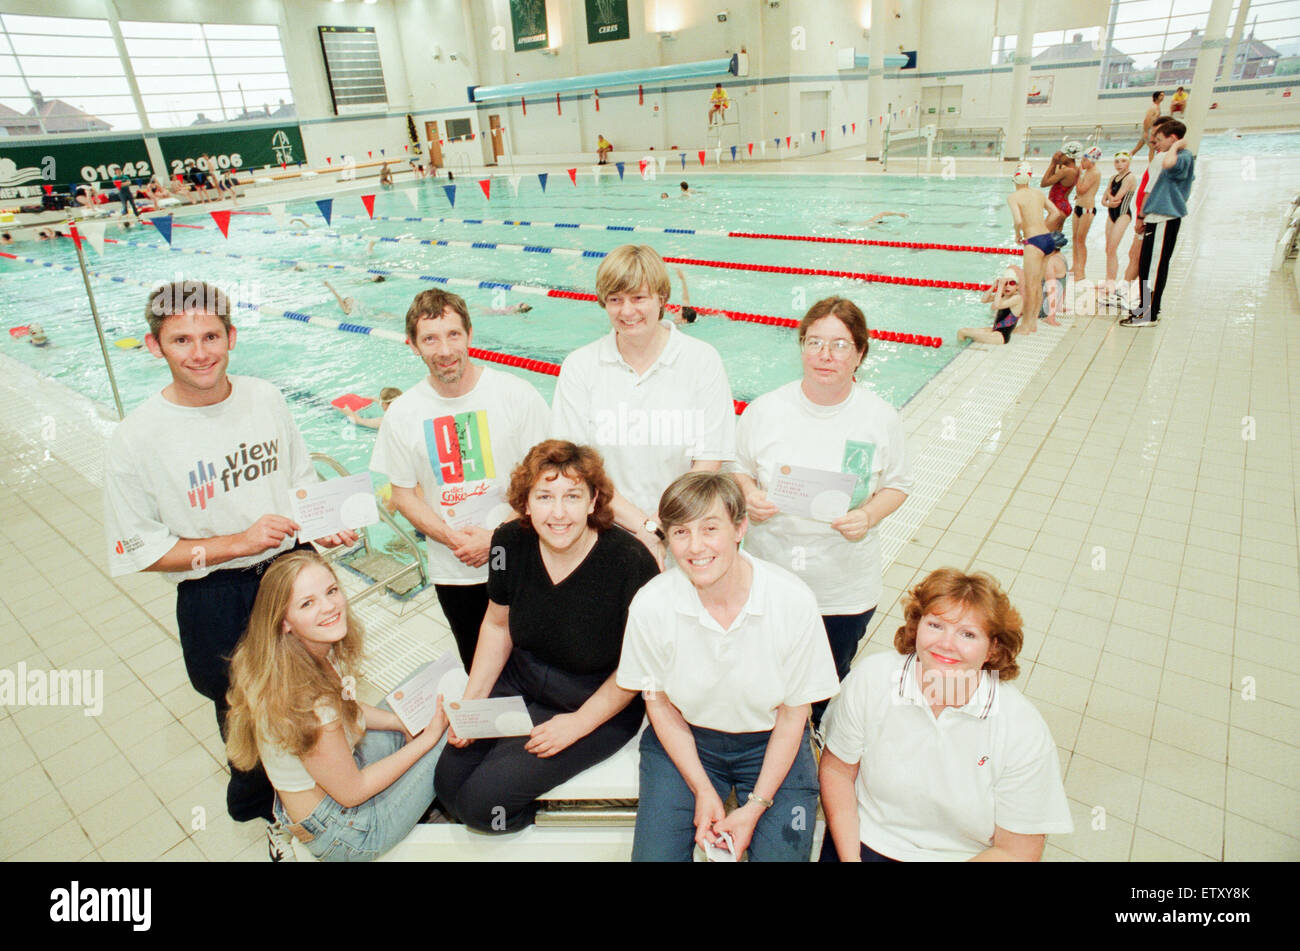 Neptune Swimming Pool Team Picture Of Qualified Instructors The Stock Photo Royalty Free